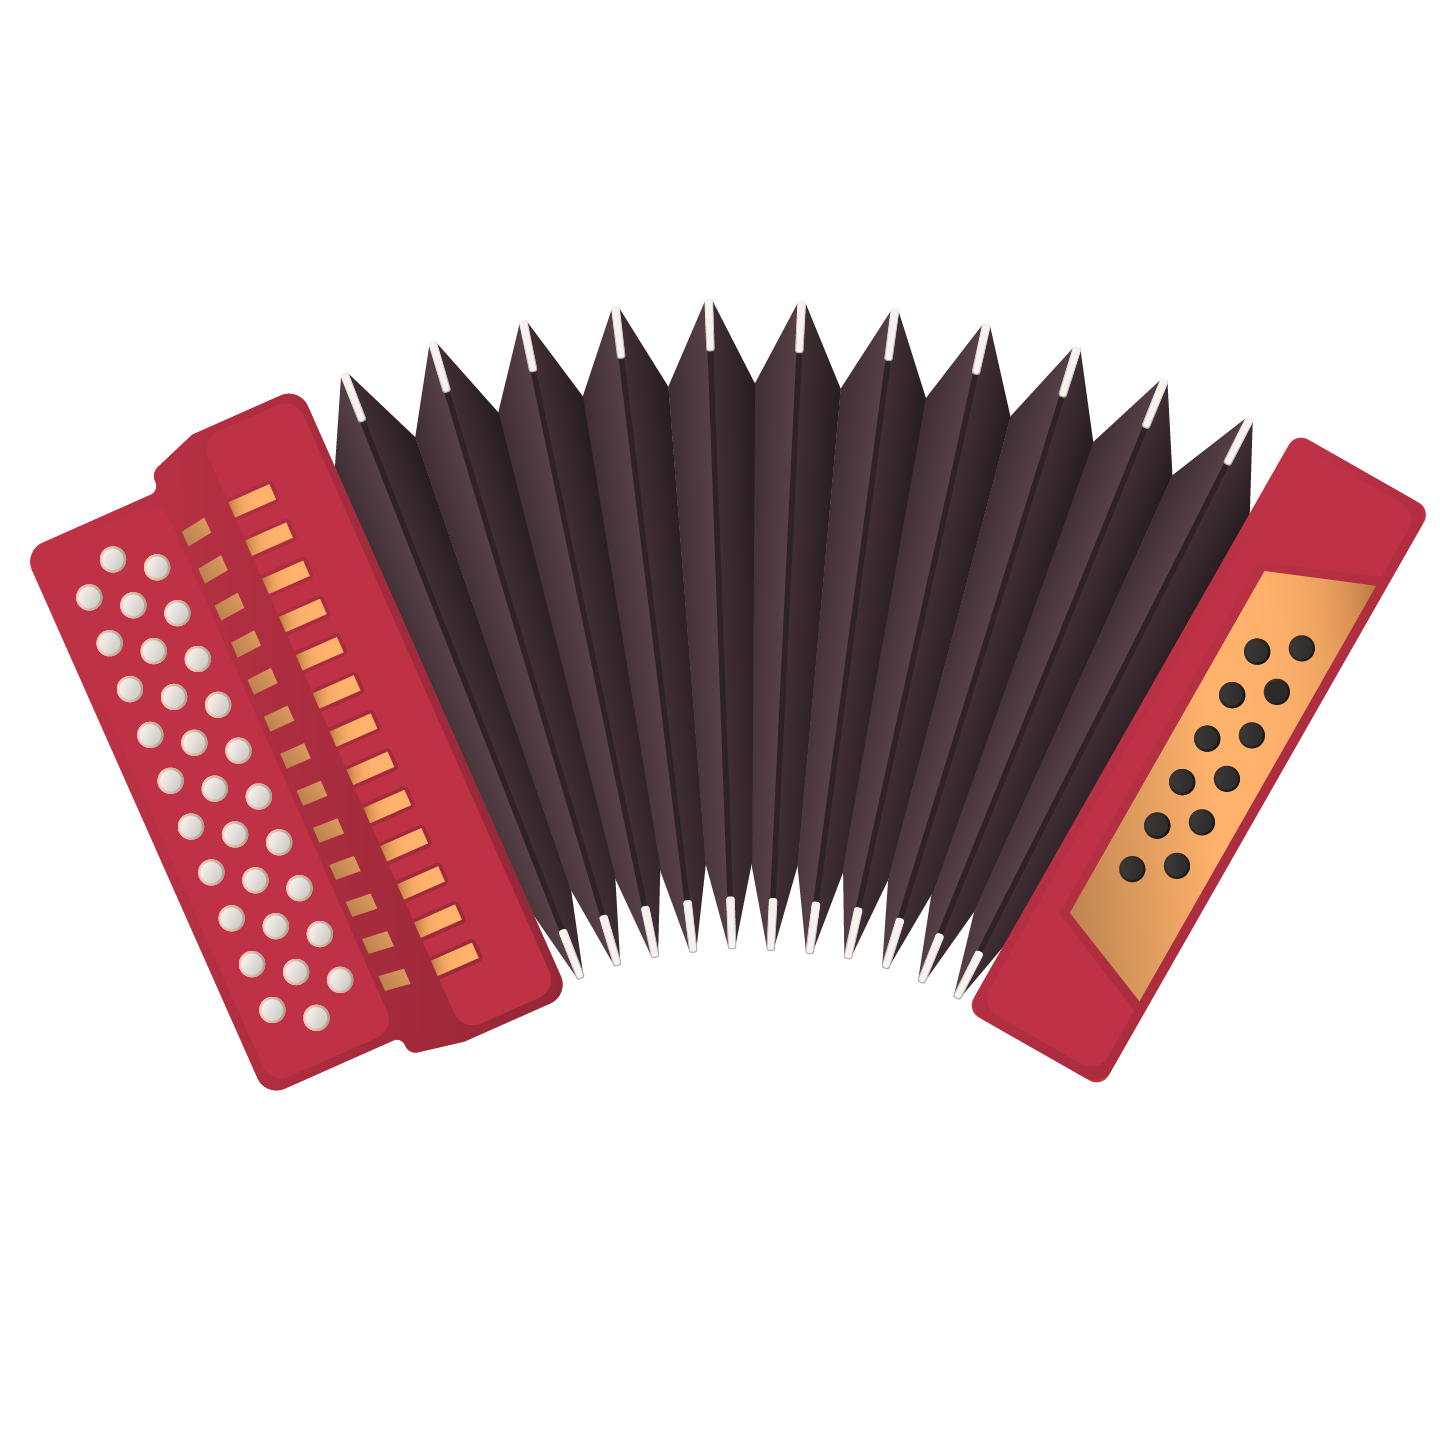 Draft emoji graphic for the Accordion Emoji: Red three-row button accordion with dark brown bellows splayed in an arc